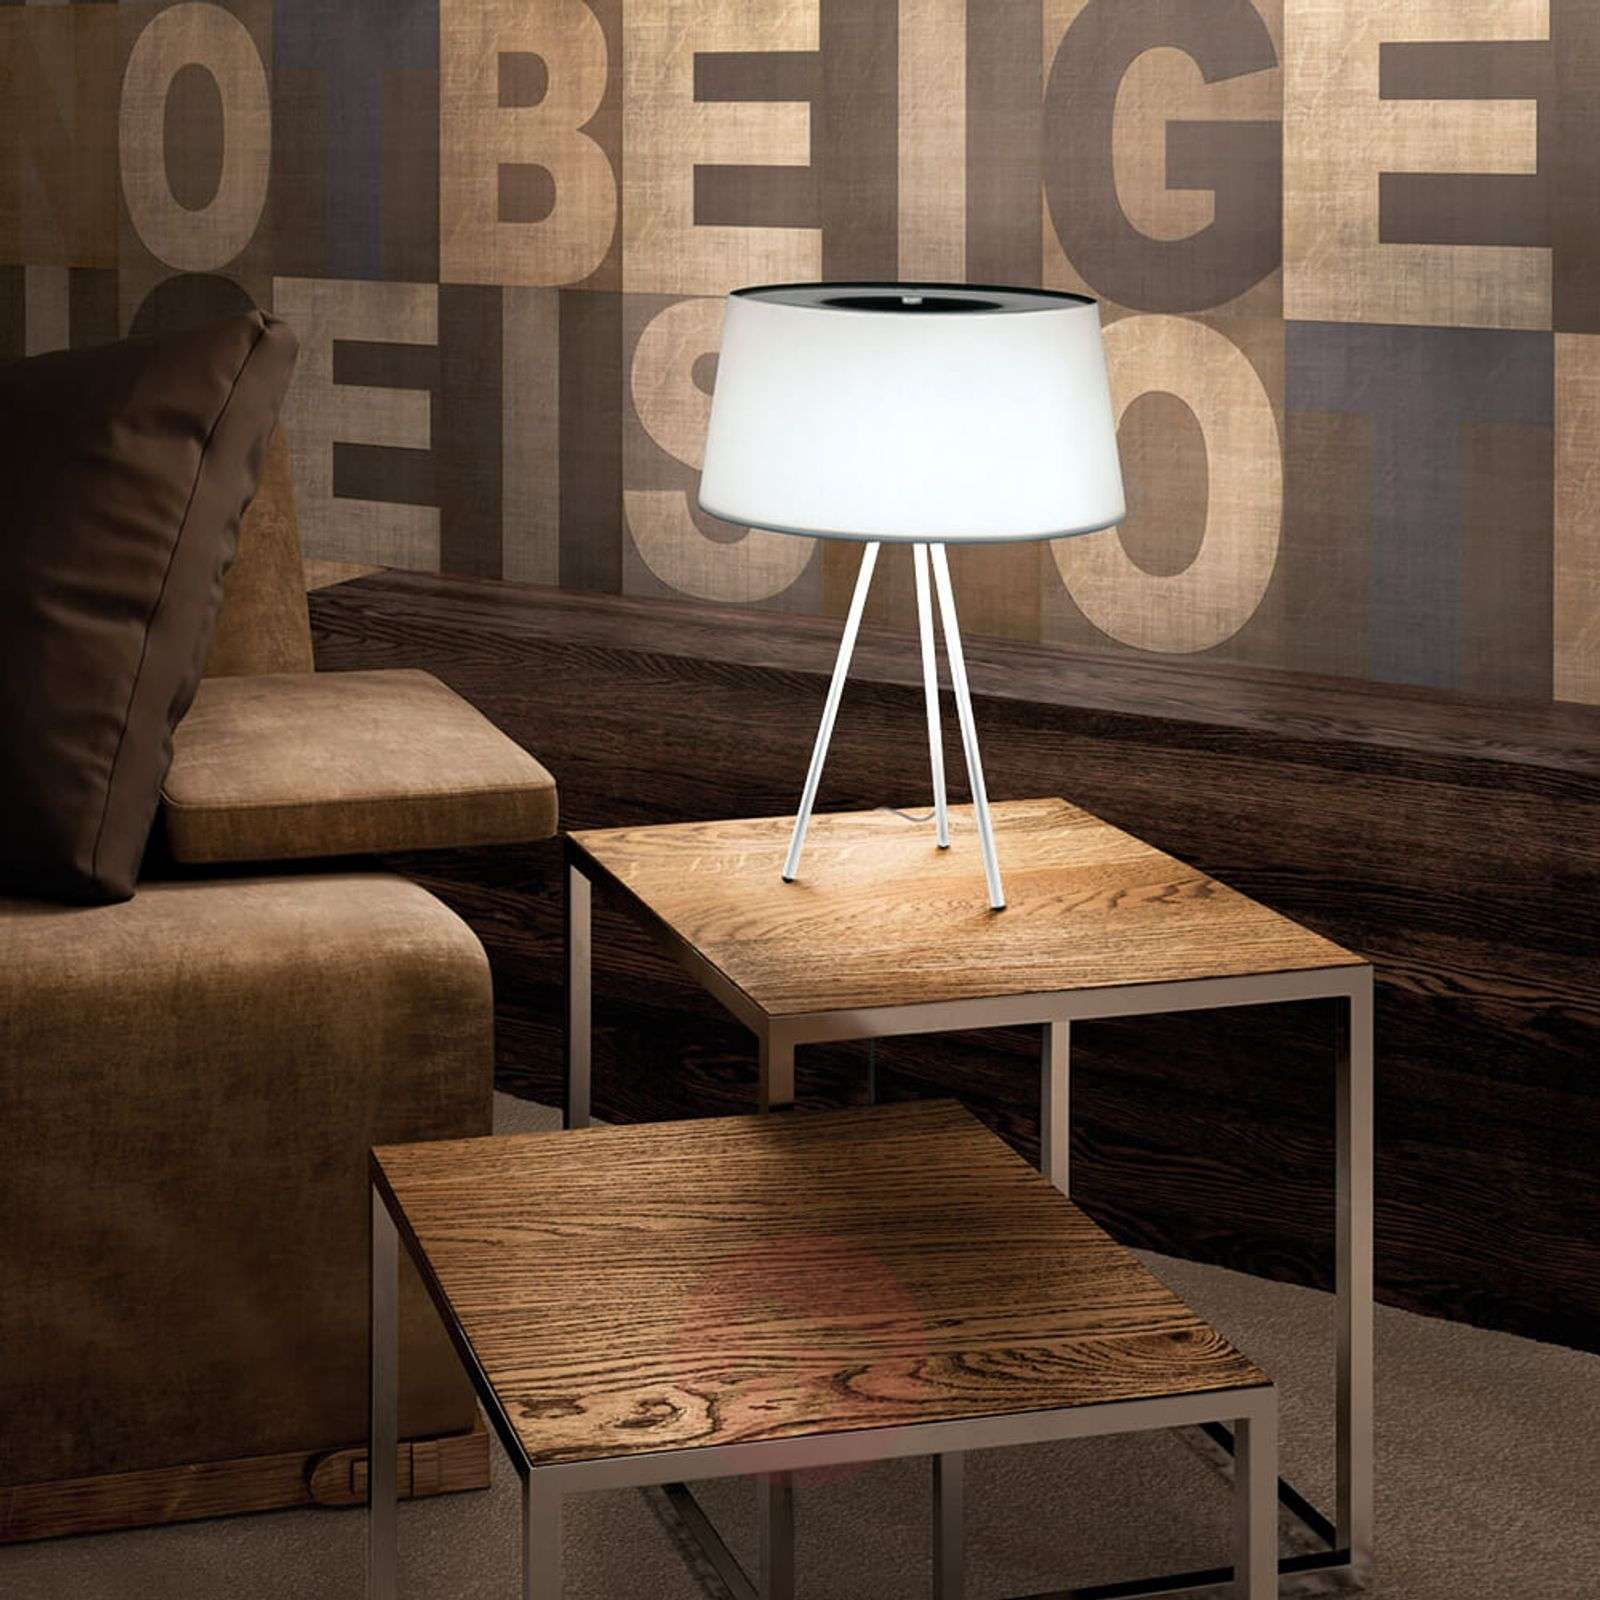 Tripod high quality table lamp lights tripod sophisticated table lamp white frame grey 5520063 01 aloadofball Images